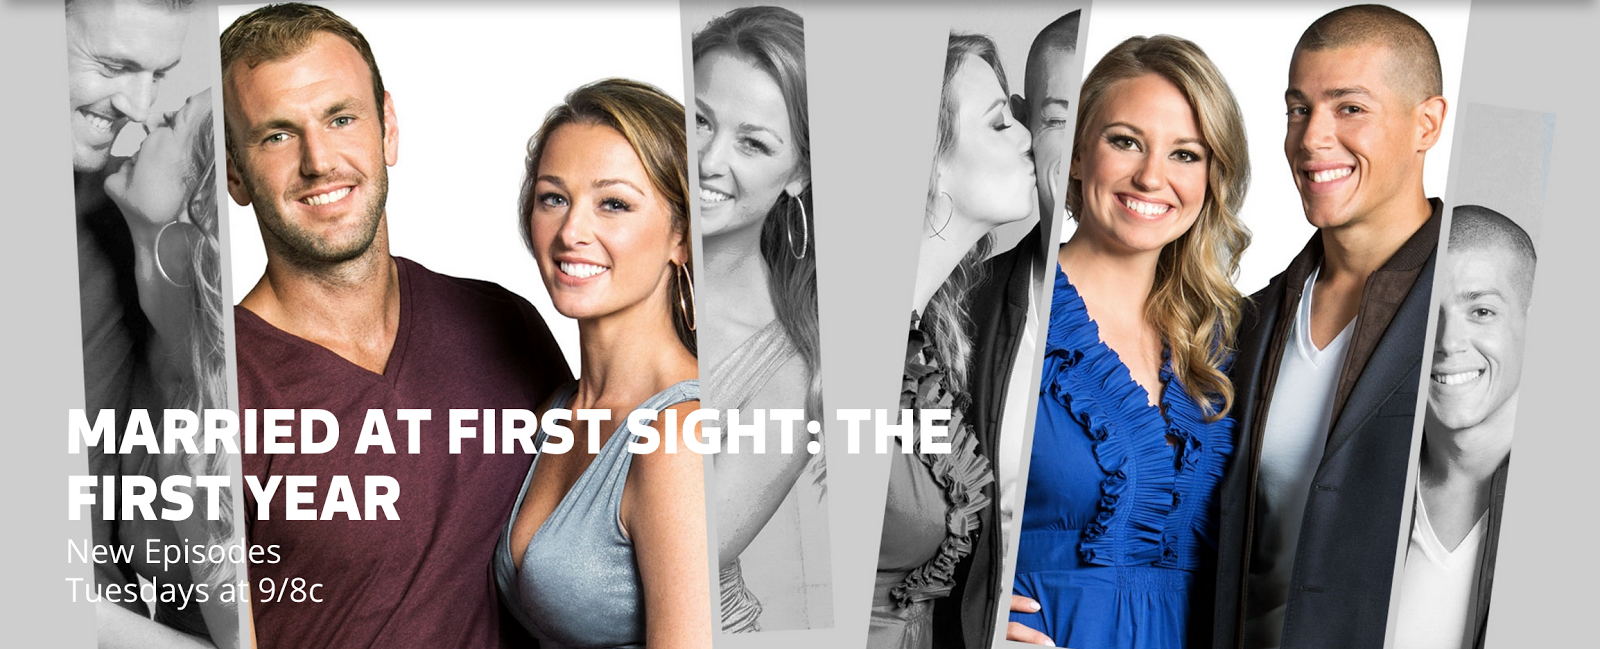 Realitvwithbee Married Sight Year 2 3 Top Tweets 1st Season